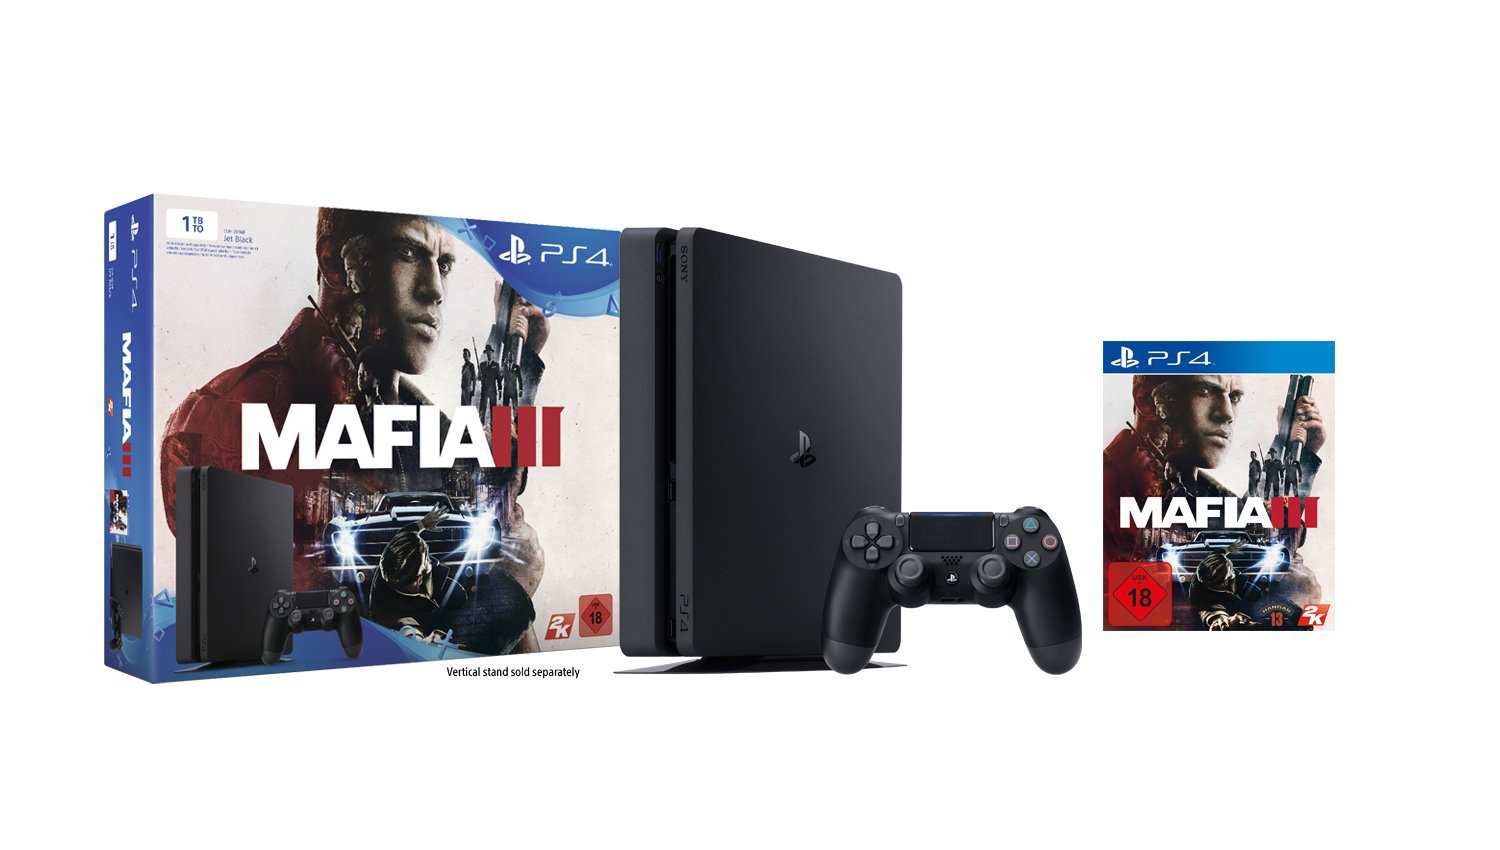 Amazon Blitzangebote am 29. April – PS4 Slim 1 TB + Mafia 3